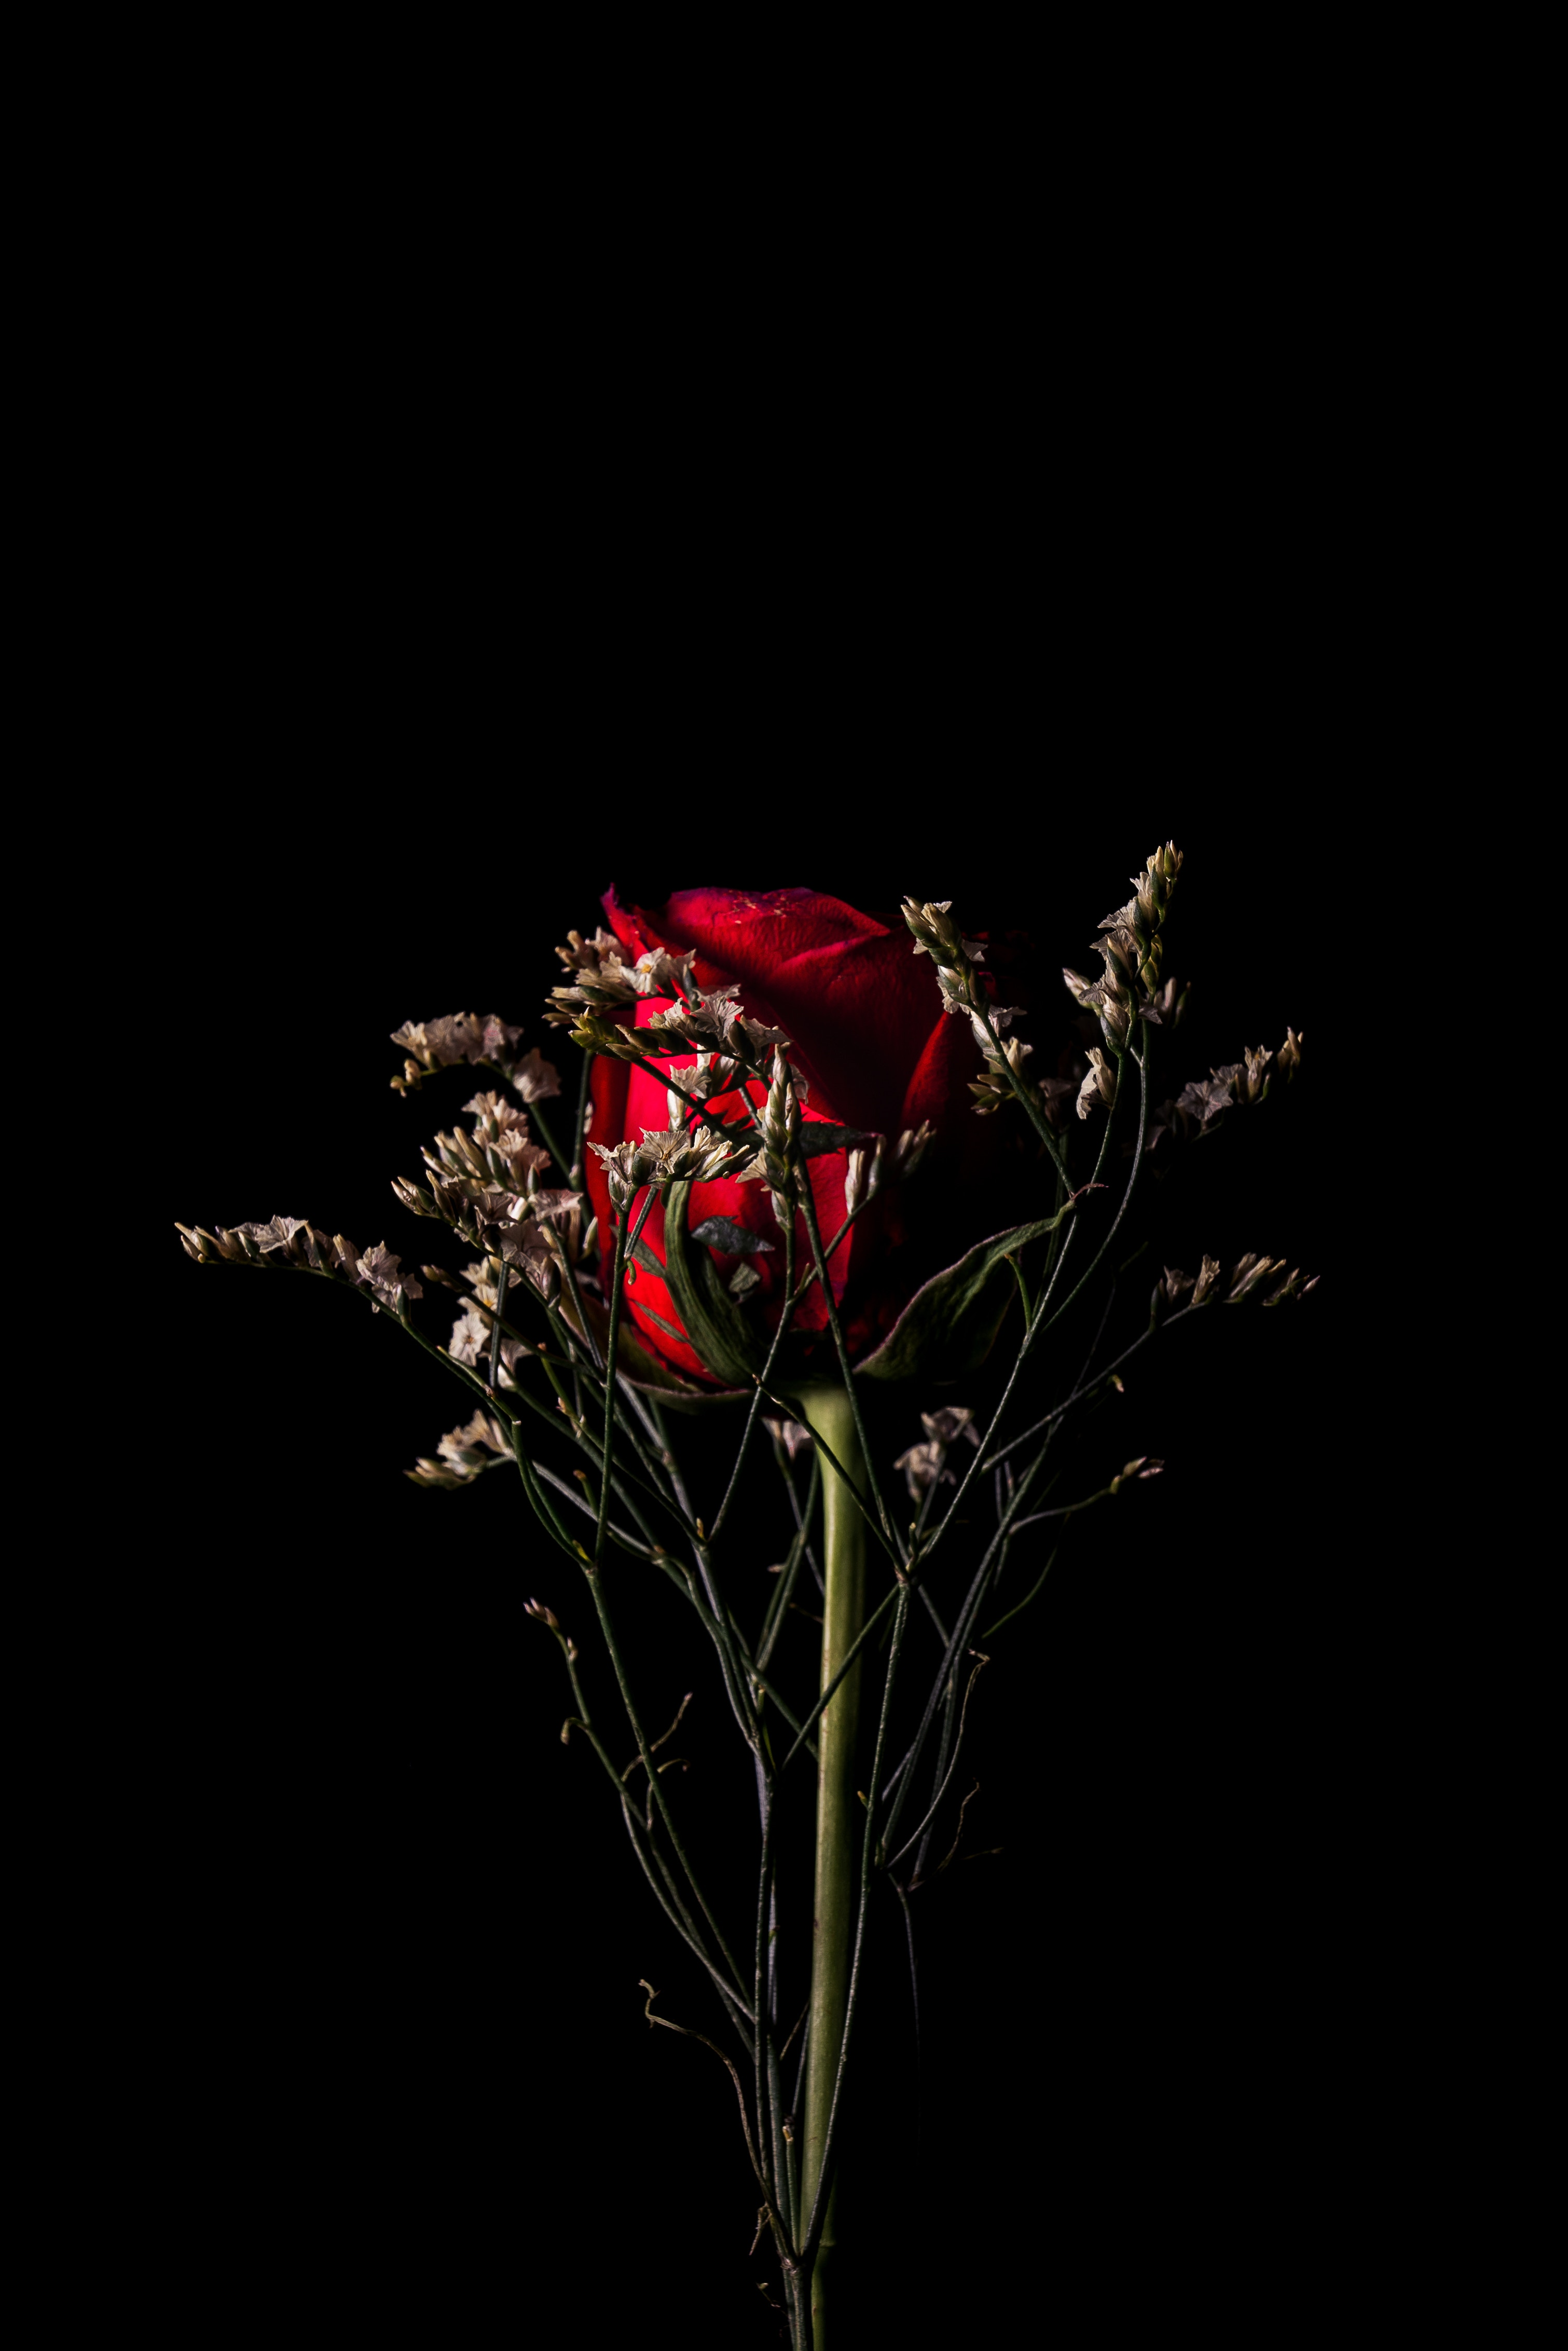 67346 download wallpaper Flowers, Flower, Dark, Rose Flower, Rose, Bouquet screensavers and pictures for free